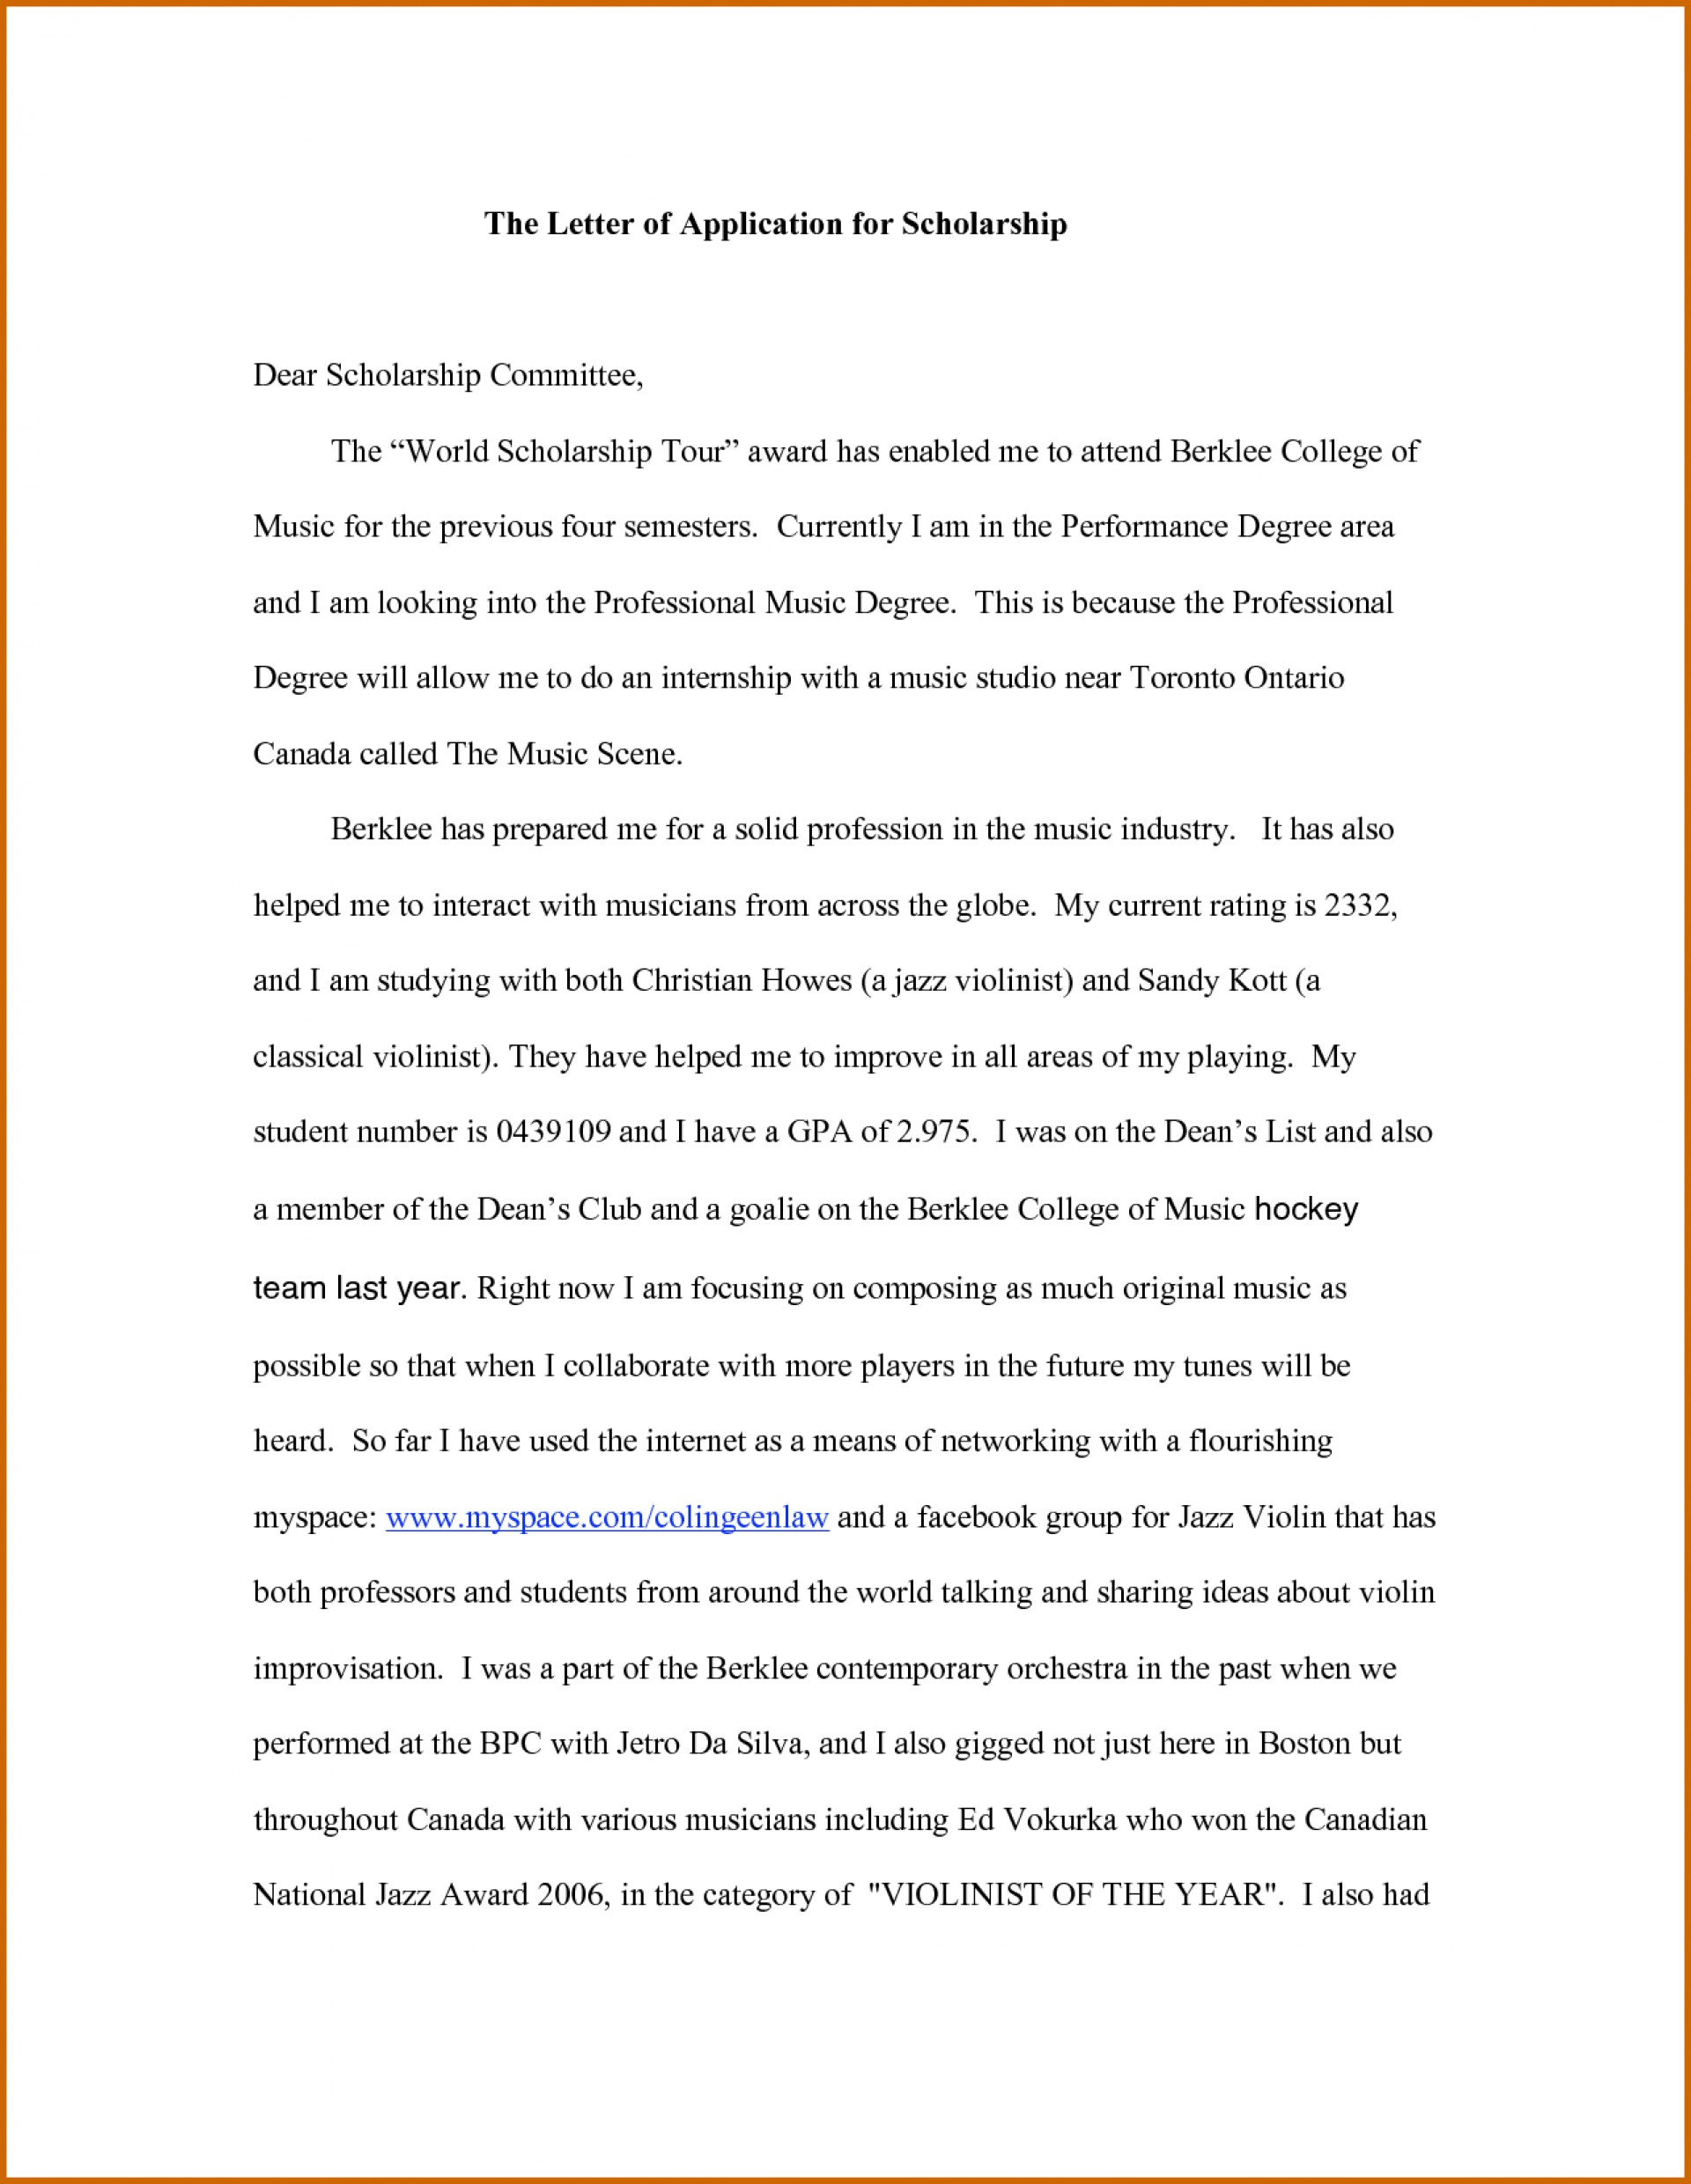 019 How To Write Essay Application For Scholarship Amazing About Yourself An A Job Interview Titles In Paper 1920